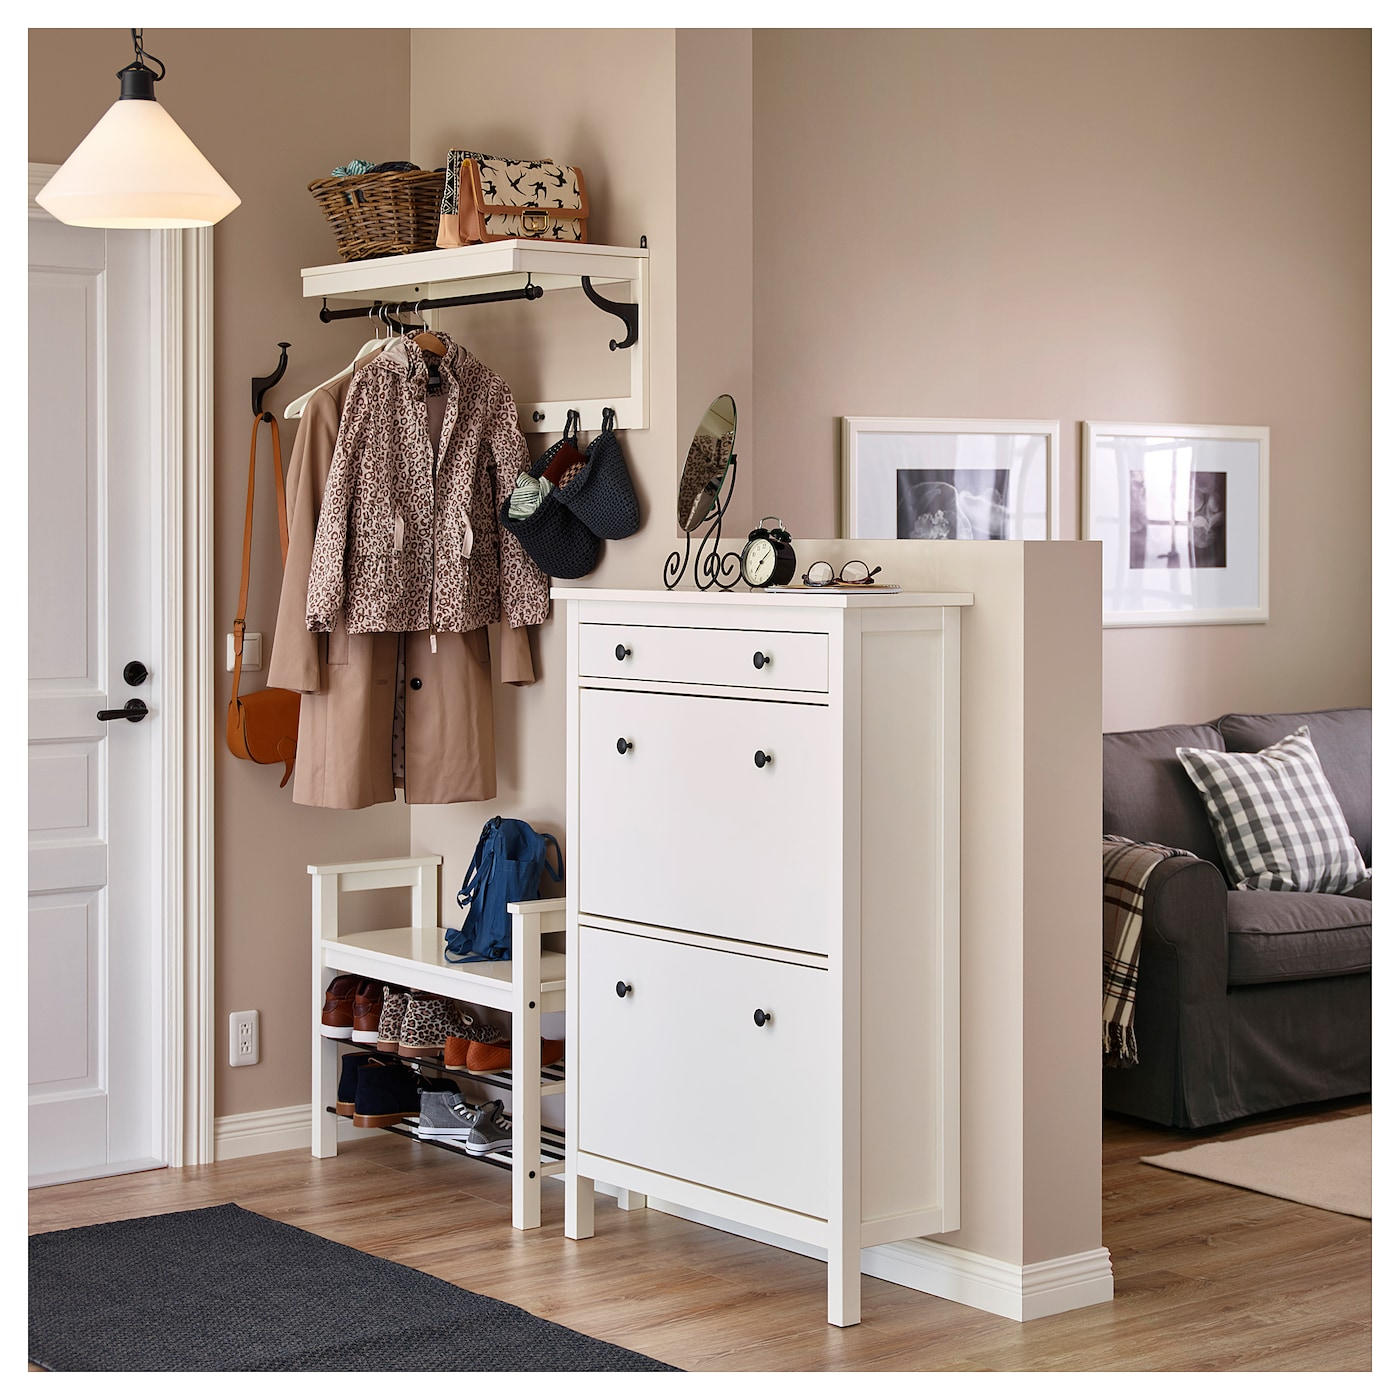 HEMNES Shoe cabinet with 2 partments White x cm IKEA